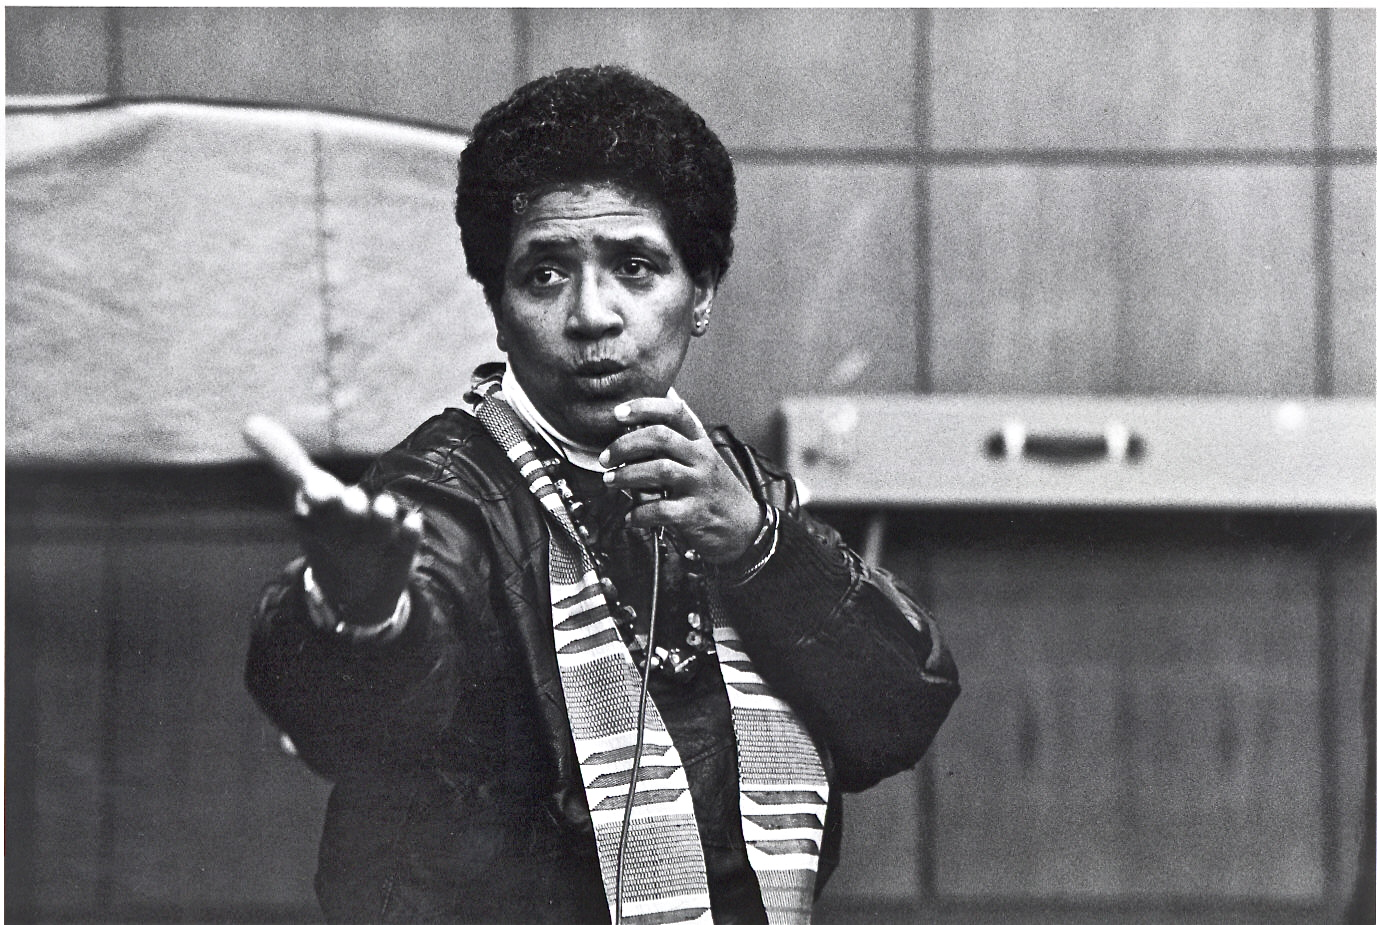 """audre lorde (1934 – 1992) poet in 1954 audre lorde was a student at the national university of mexico lorde describes her experience at num as """"at time of affirmation and renewal"""" which is where she realized she identified on a personal and artistic levels as a lesbian and a poet."""